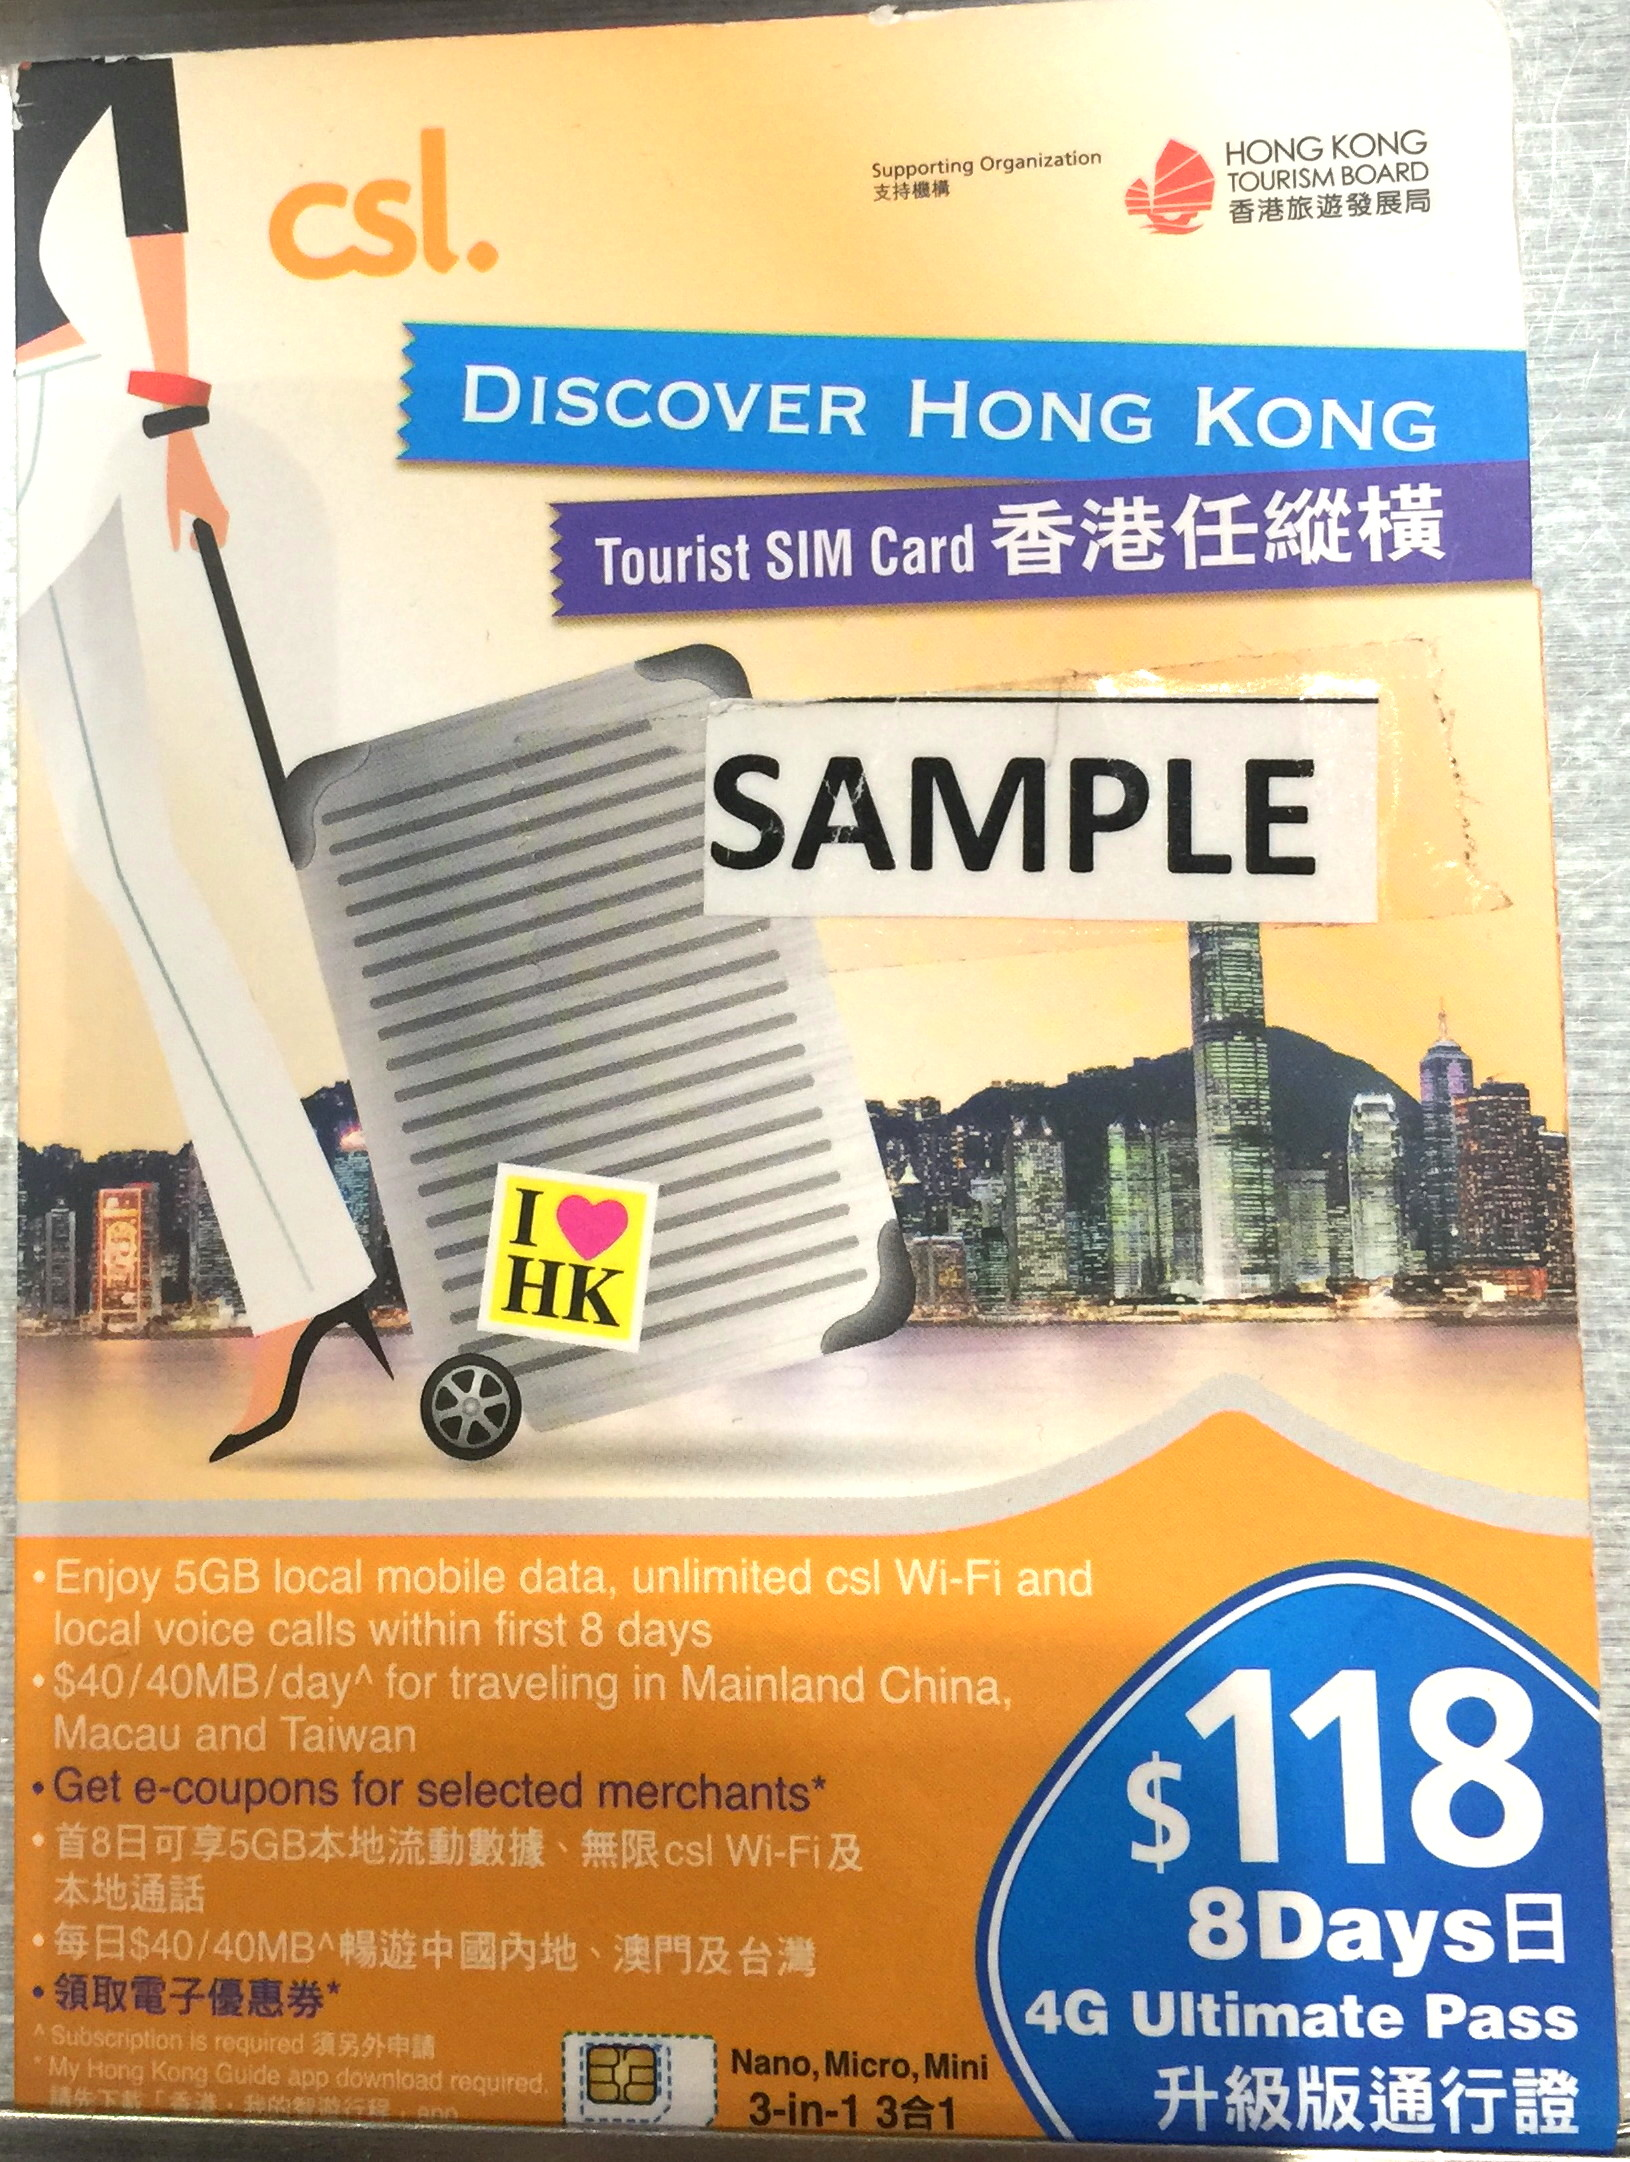 Hong Kong Tourist Sim Card for 8 days